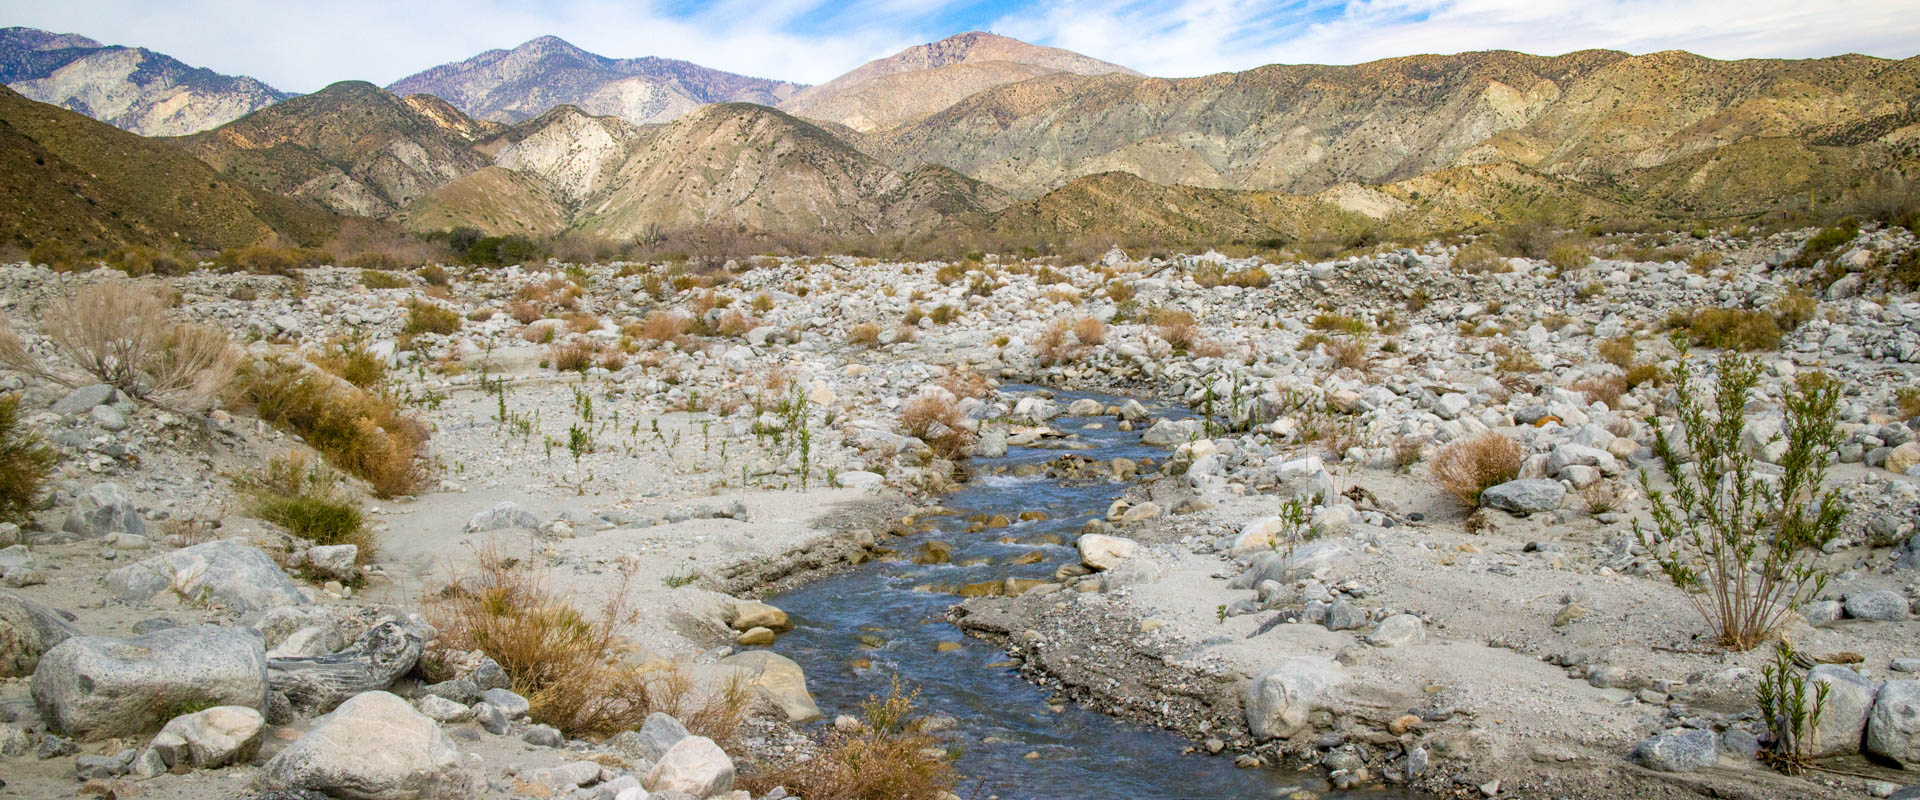 Discover the beauty of the Coachella Valley and Beyond